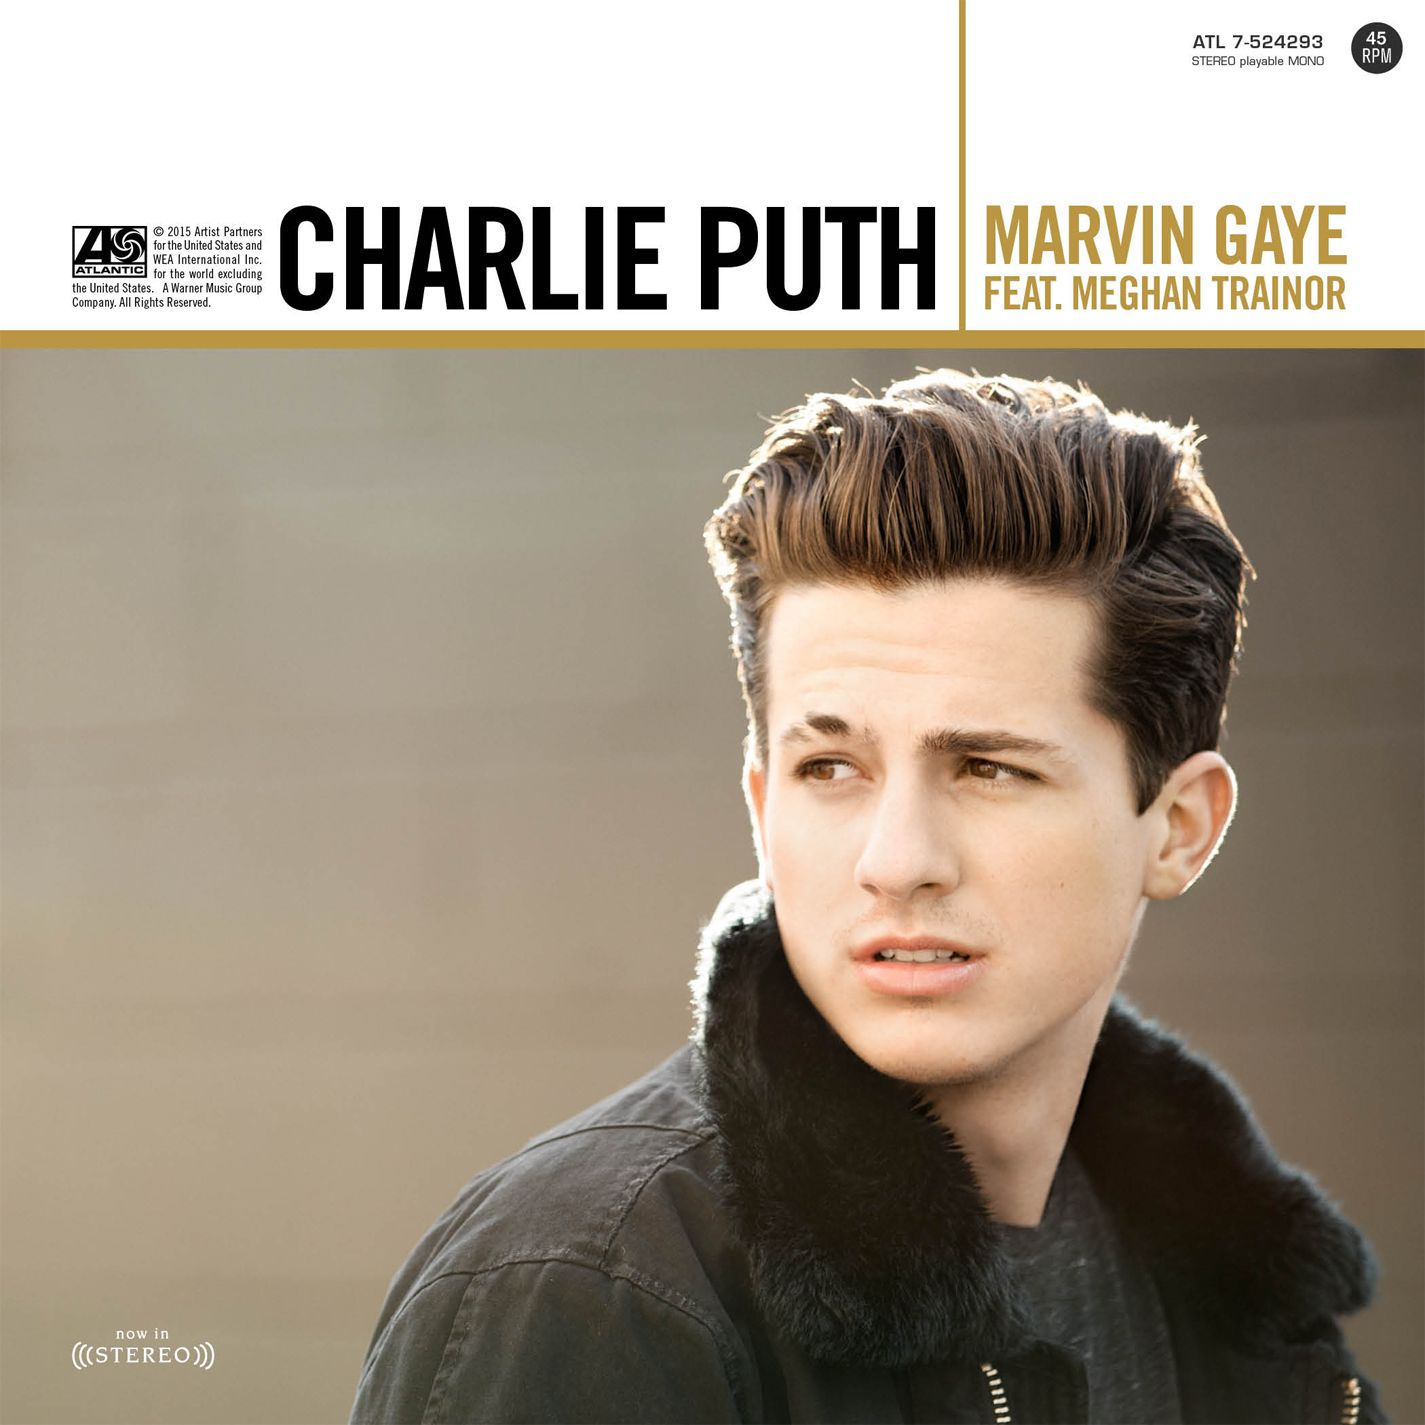 Charlie Puth - Marvin Gaye (feat. Meghan Trainor)